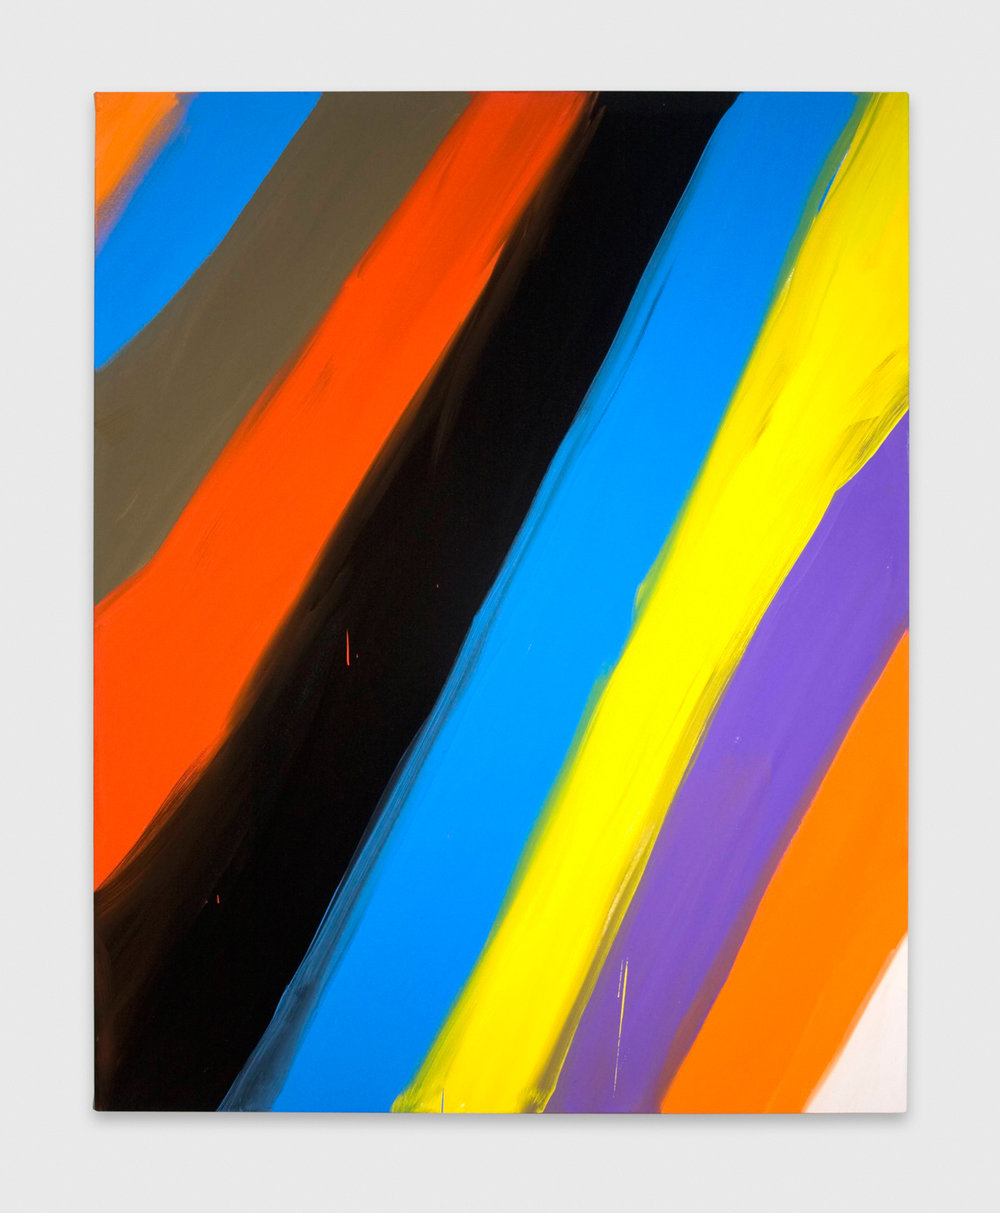 Ann Craven  Untitled (Stripe Orange blue black 2-1-08)  2008 Oil on canvas 60h x 48w in AC045